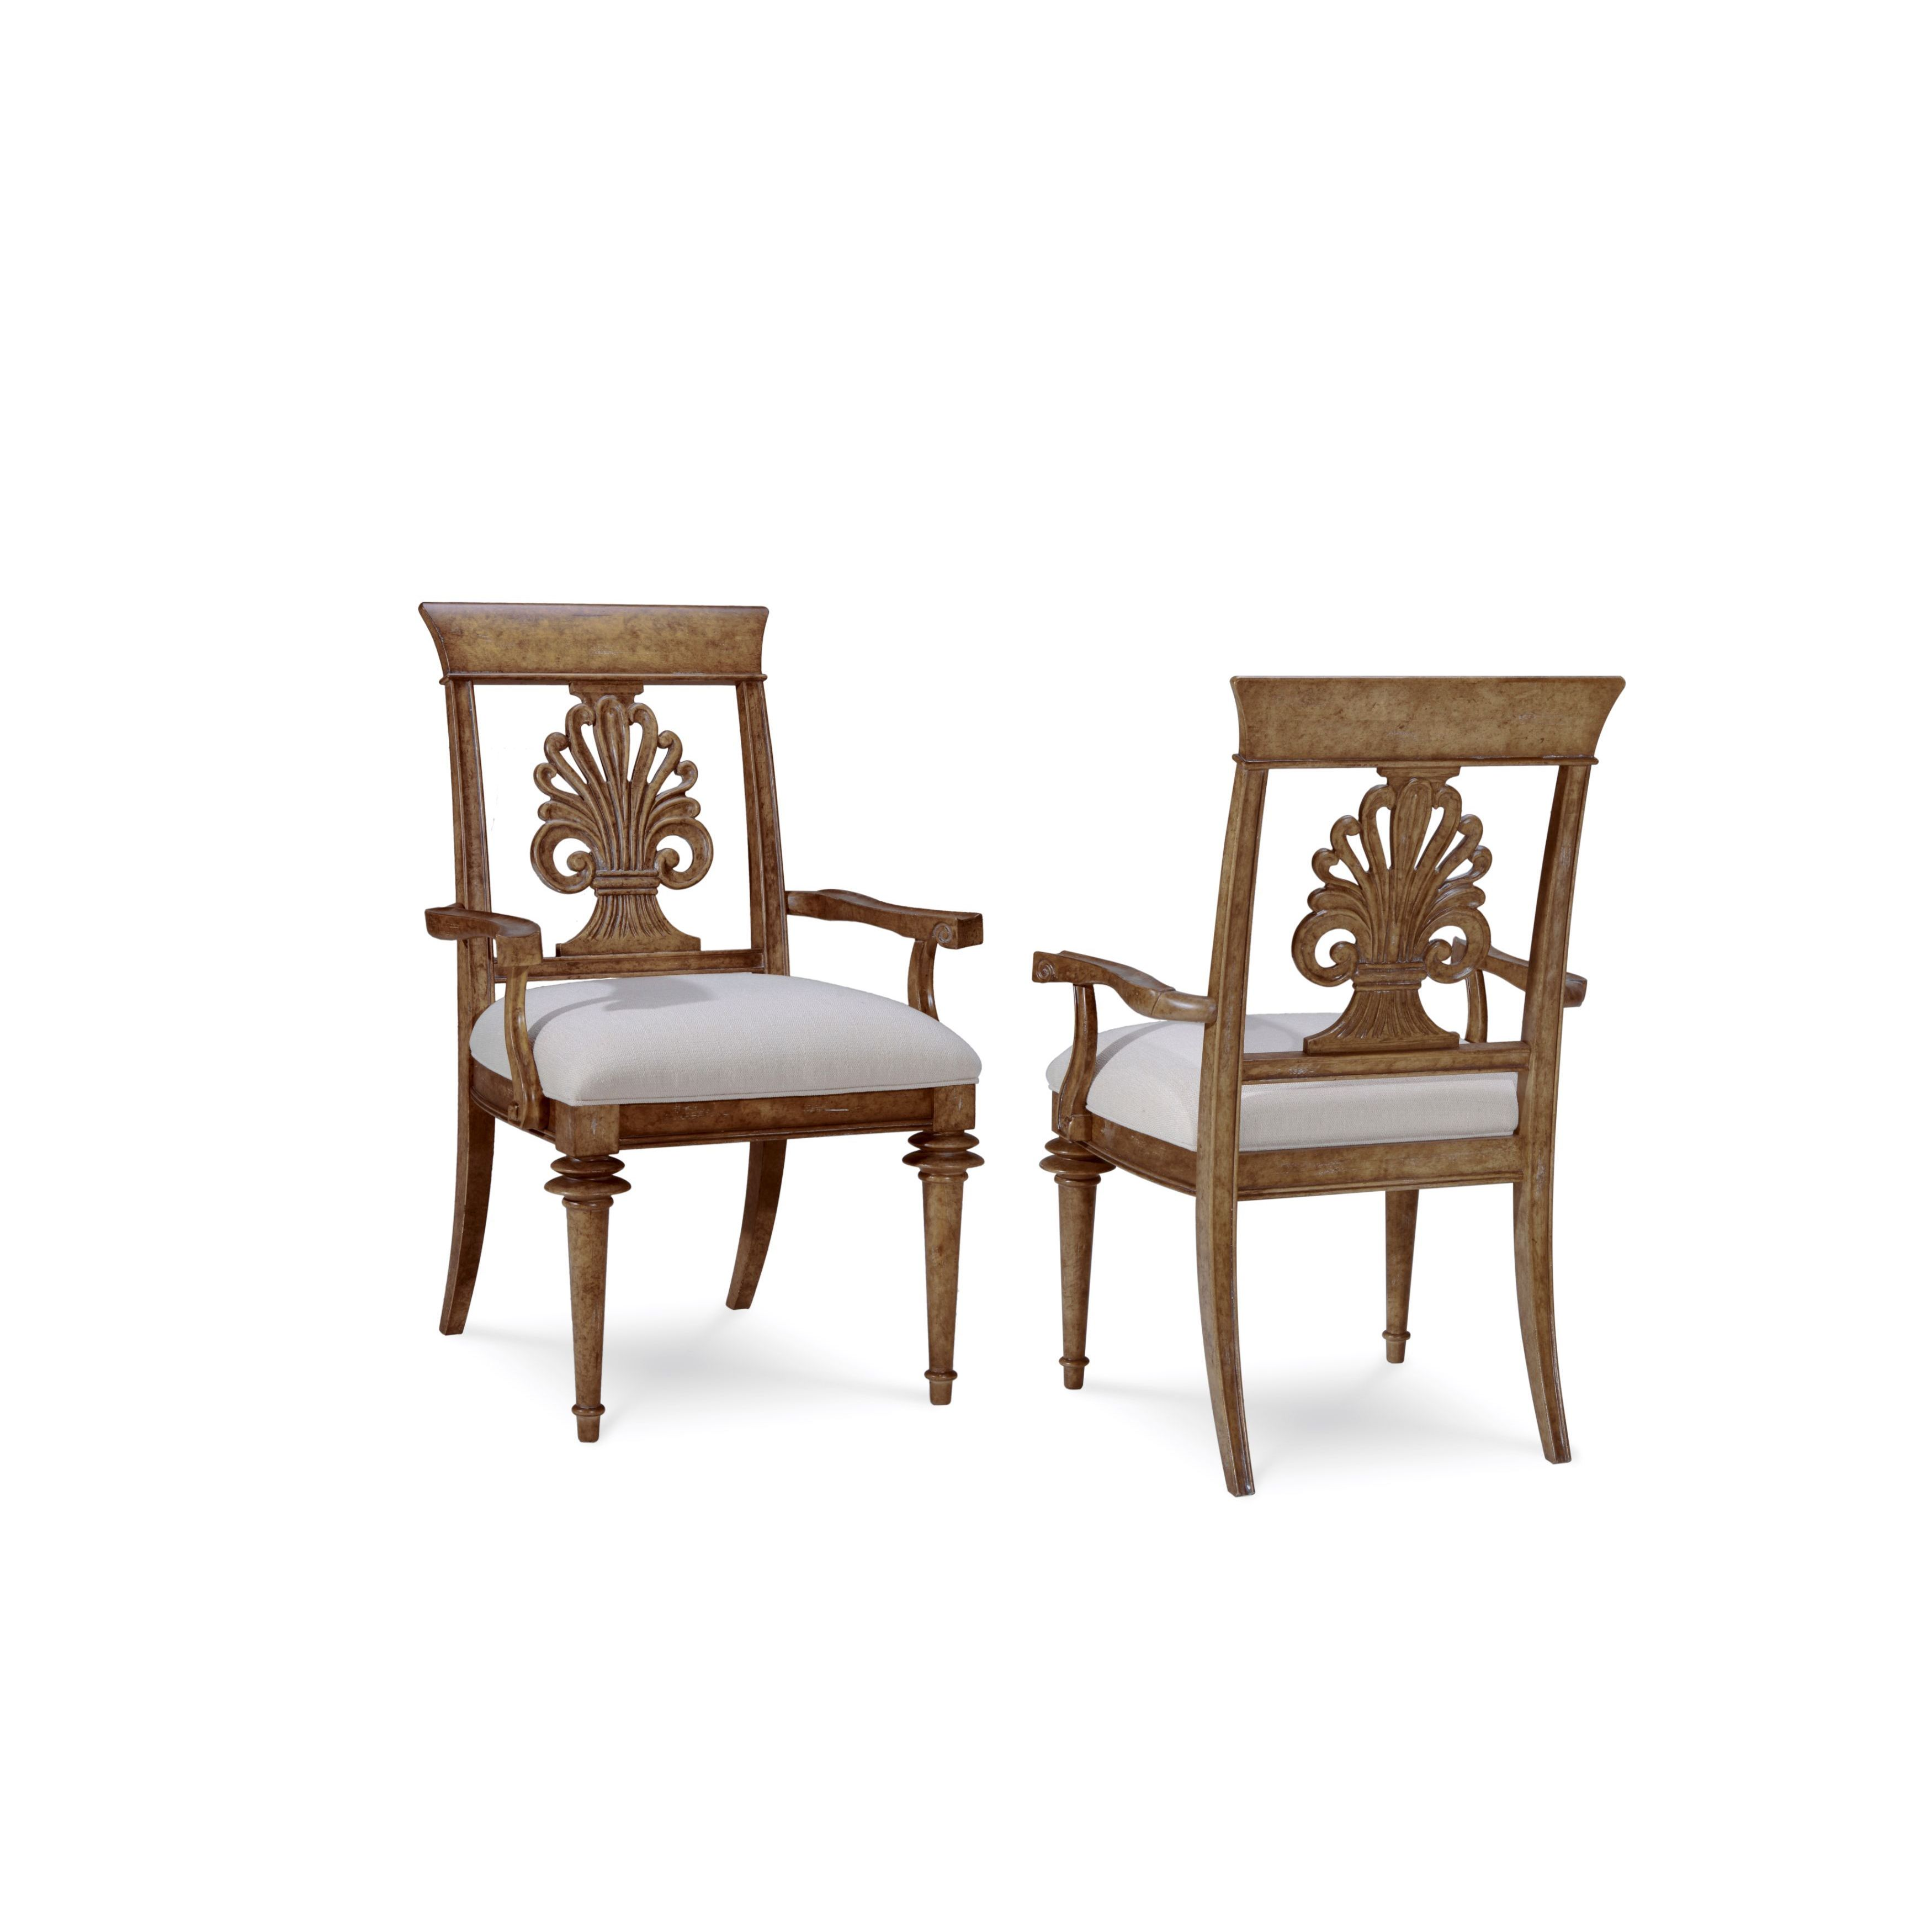 Shop a r t furniture pavilion radiatta wood and crypton fabric upholstered arm chairs set of 2 free shipping today overstock com 12957344